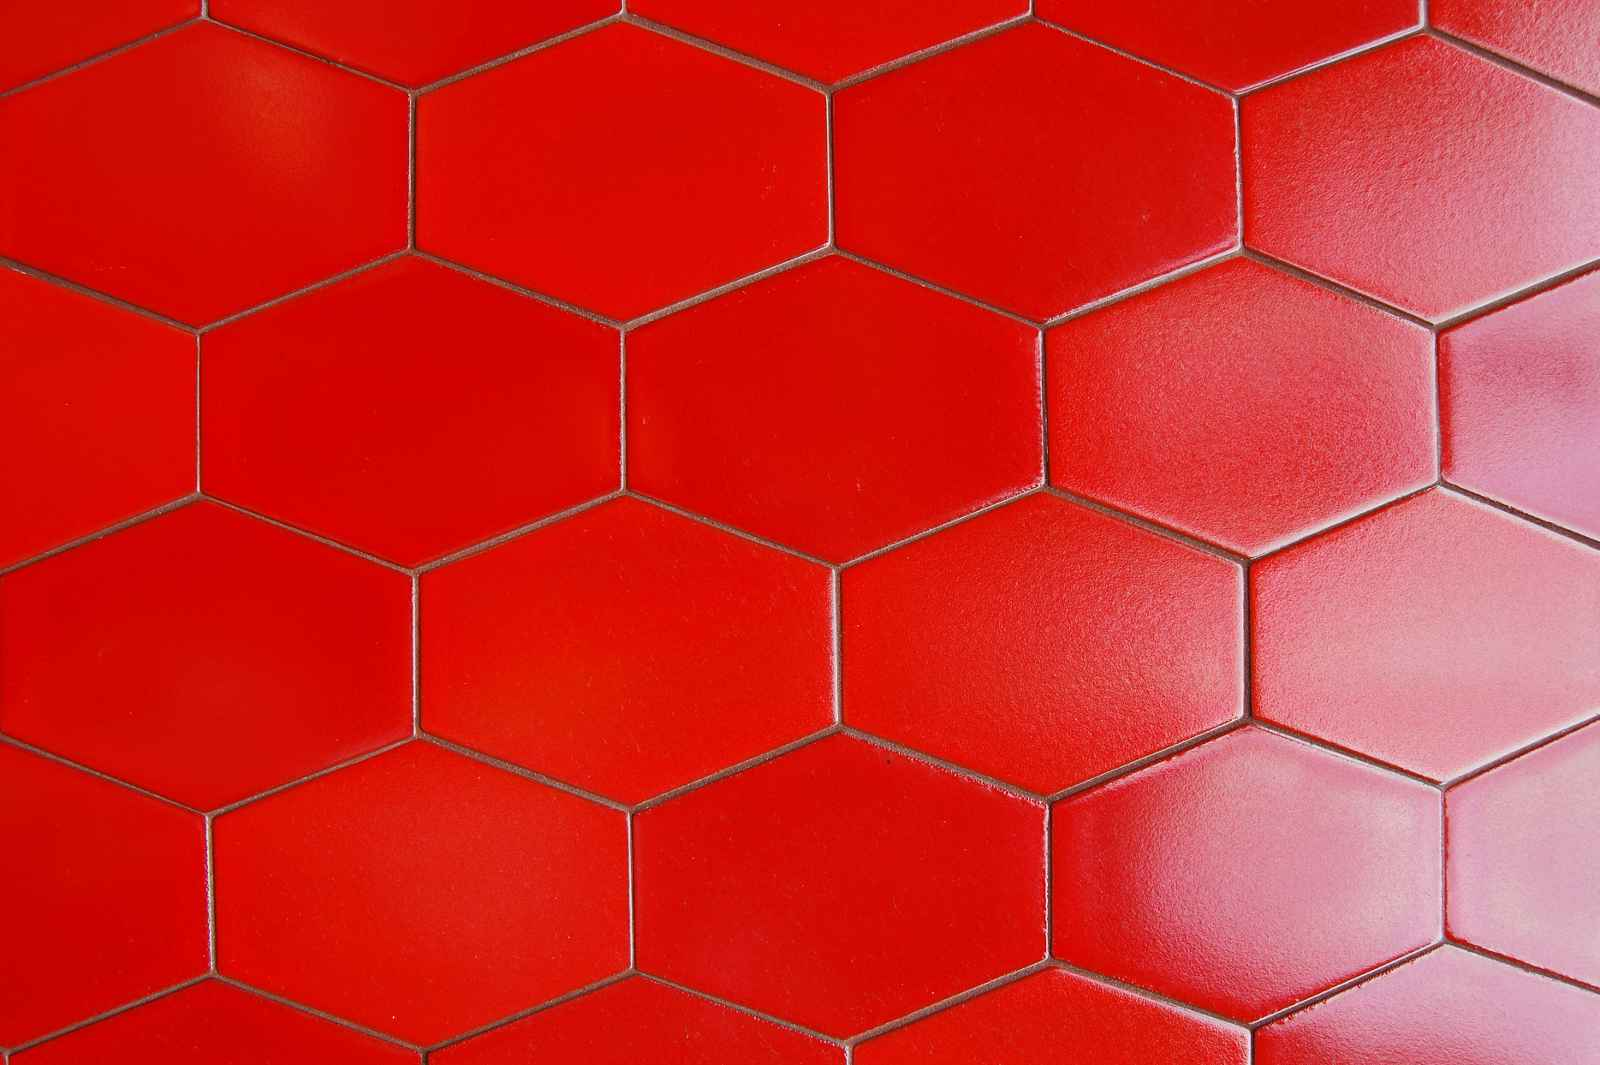 Rode Vloertegels Red Ceramic Floor Tiles That Bright And Clean